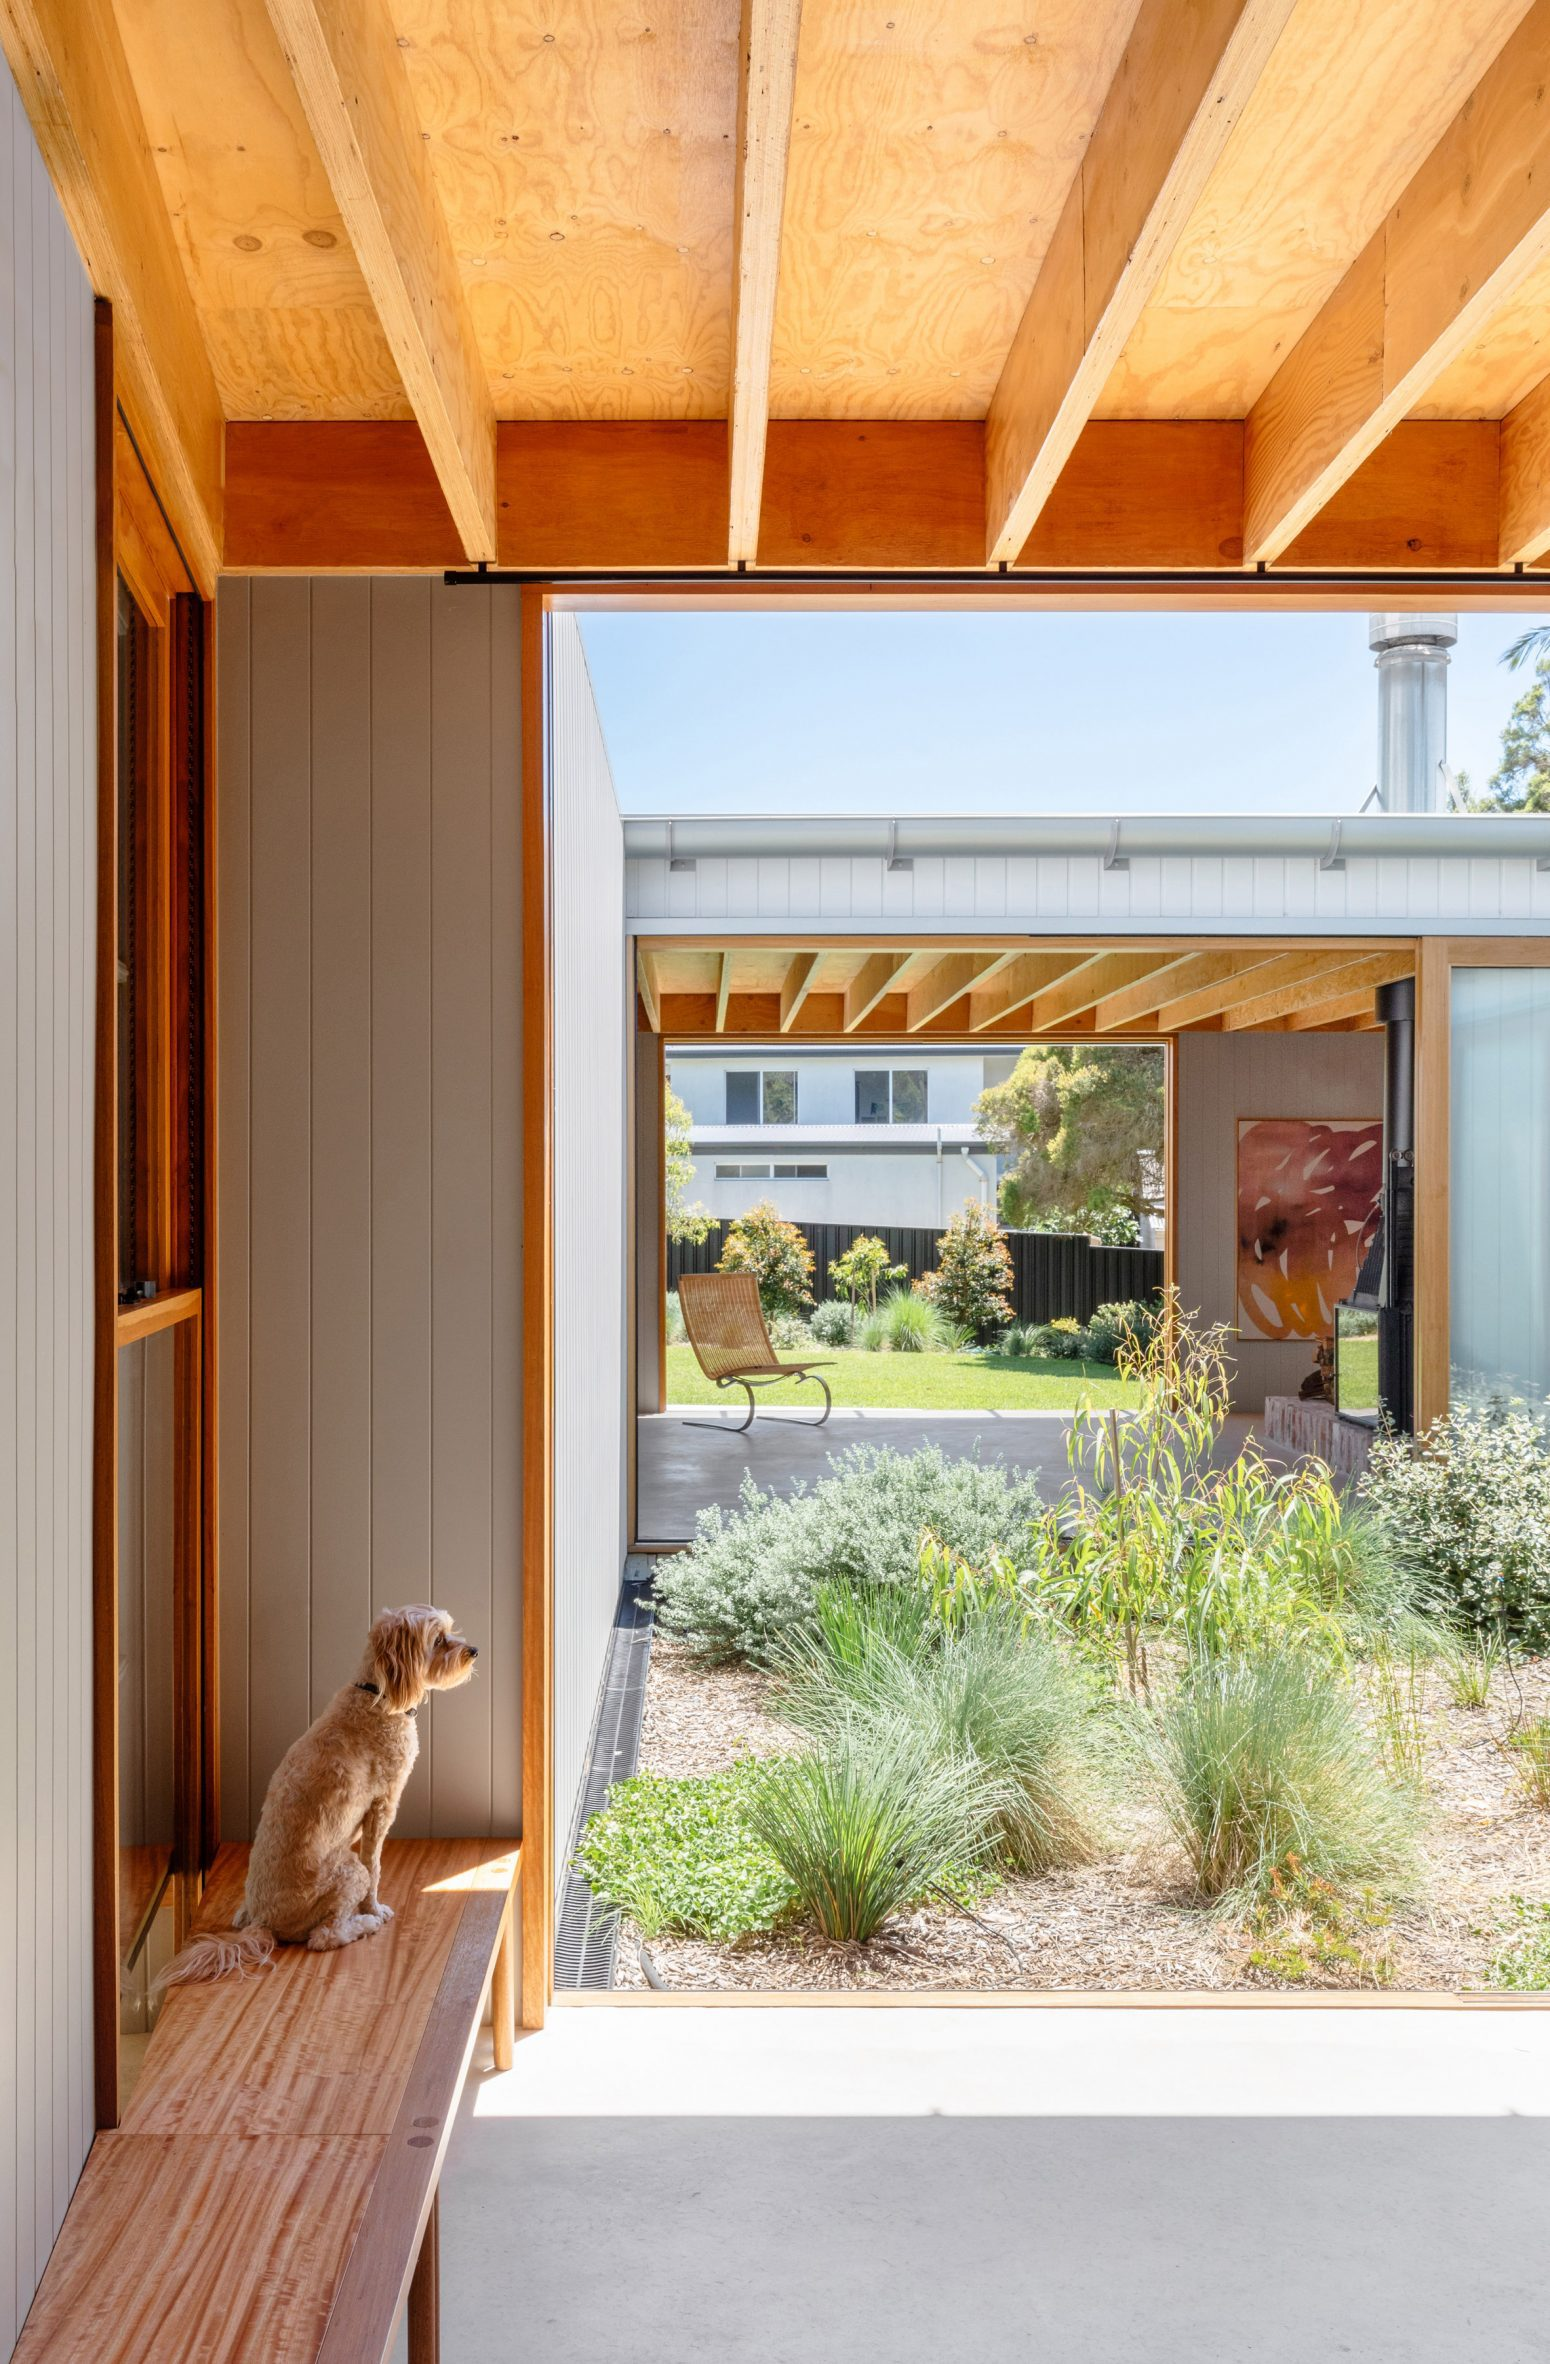 Tribe Studio Architects added an inner courtyard to the house